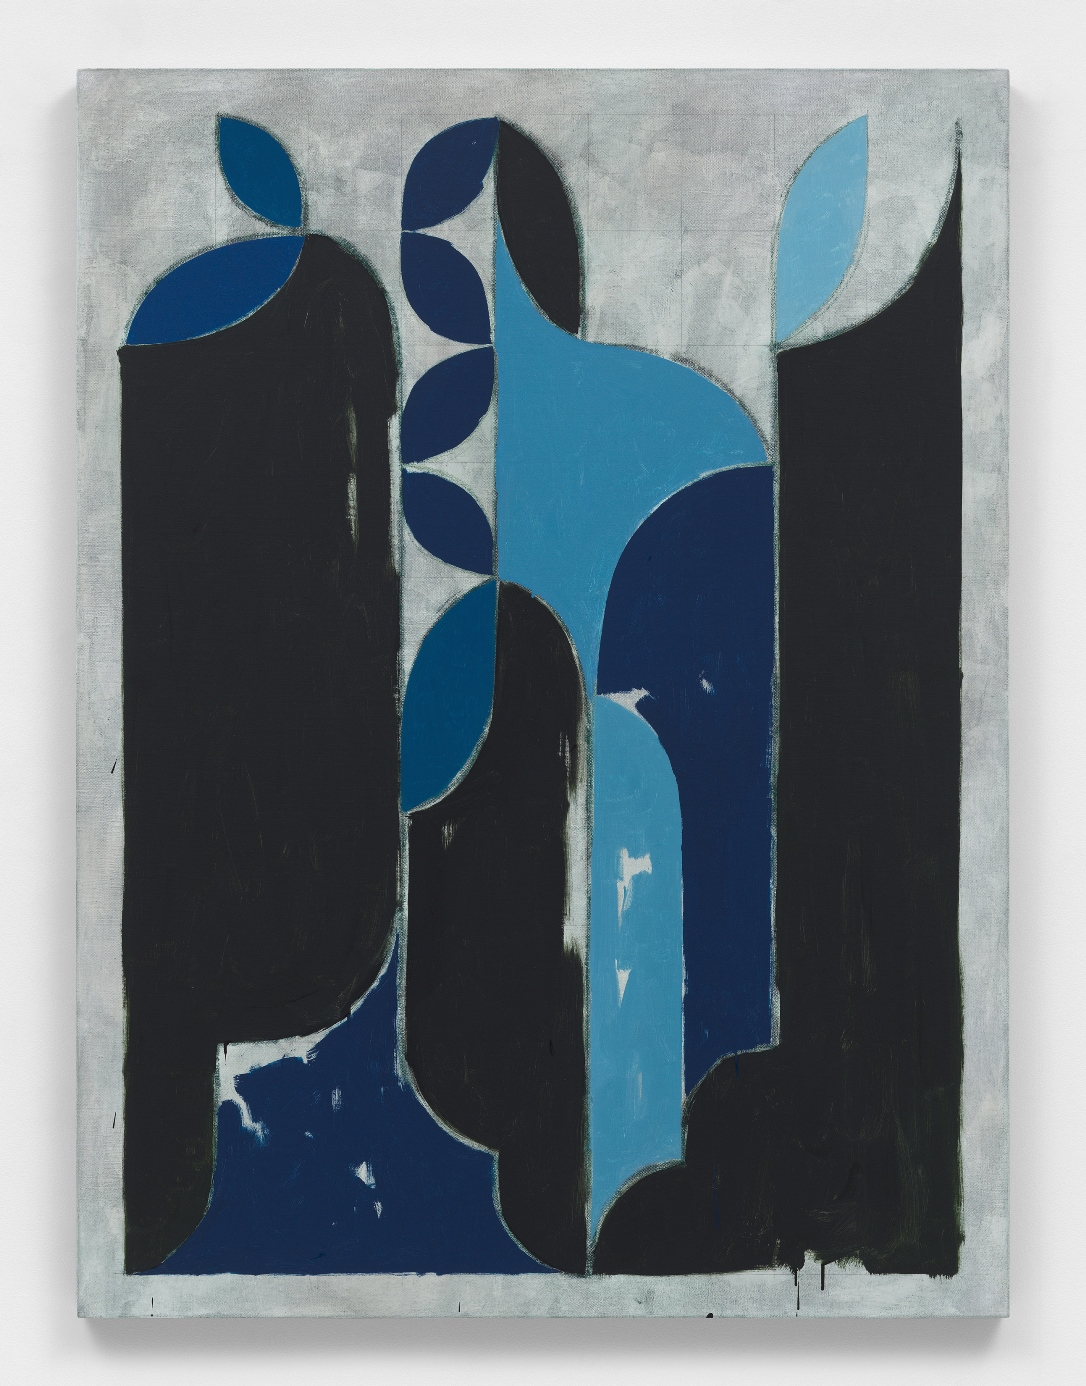 Field of Vision, a Unique Five-Person Exhibit at Peter Blum Gallery